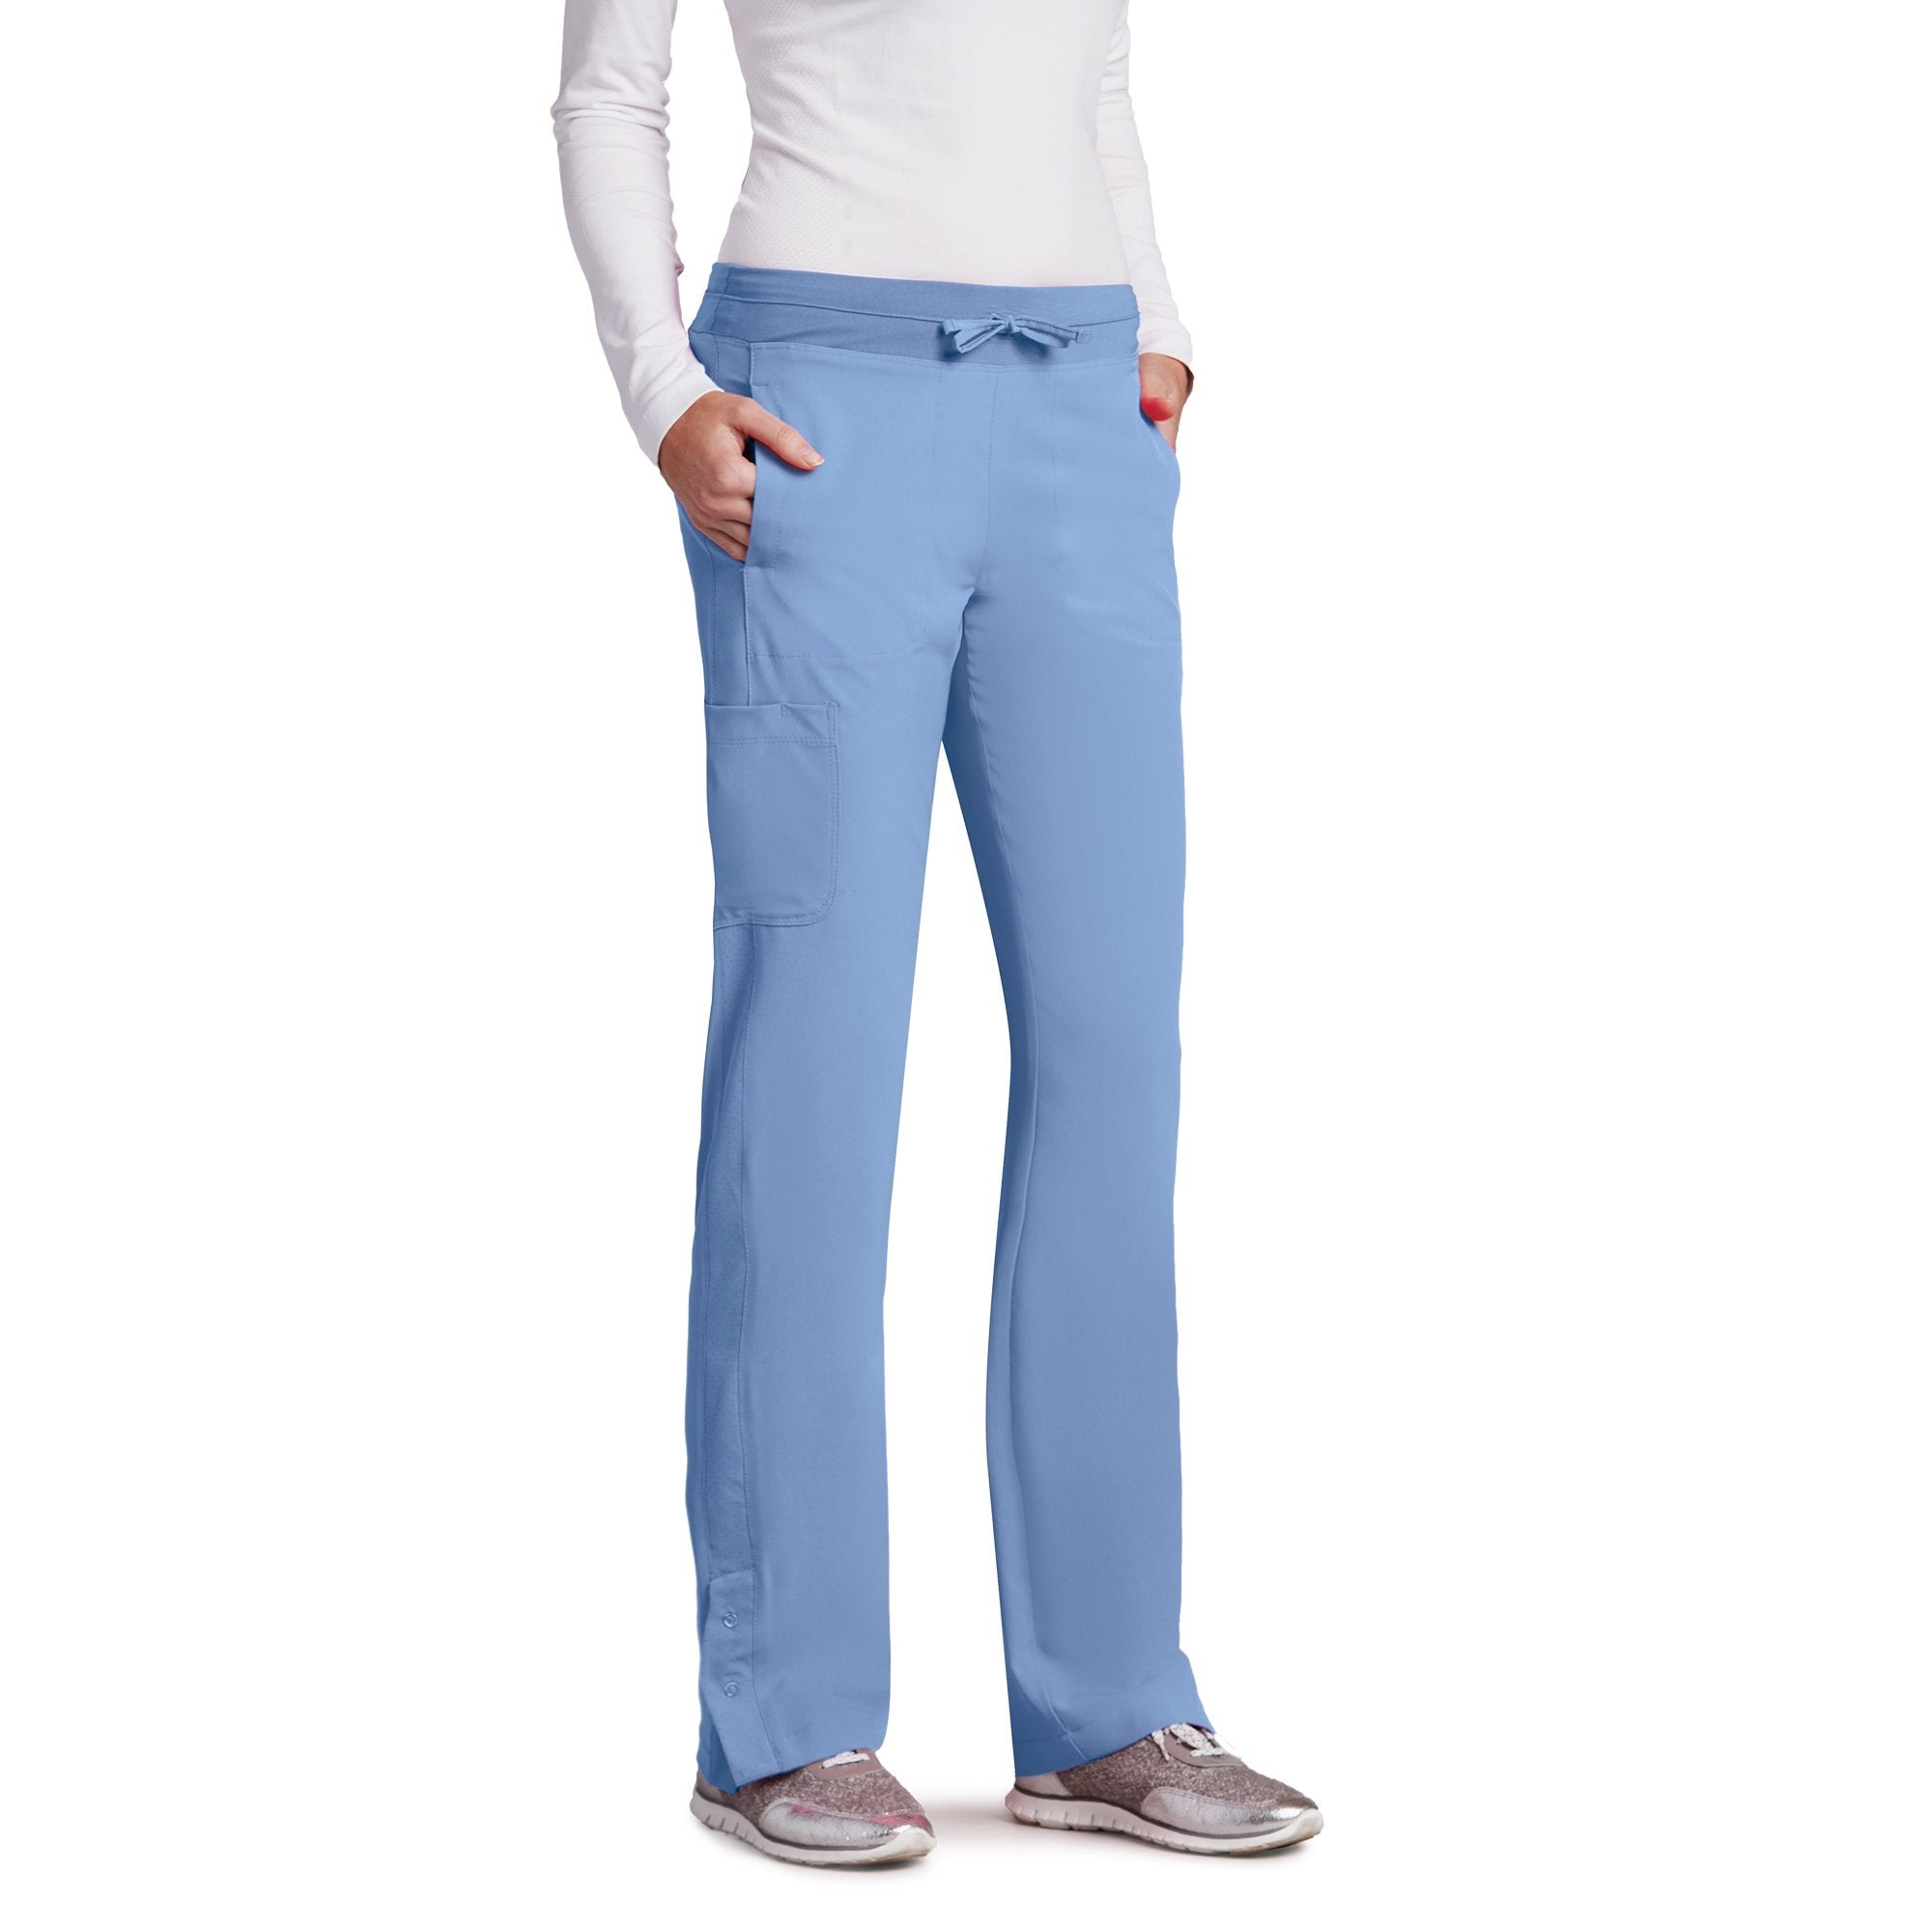 Barco One 5205 Tall 4-Pocket Cargo Track Pant